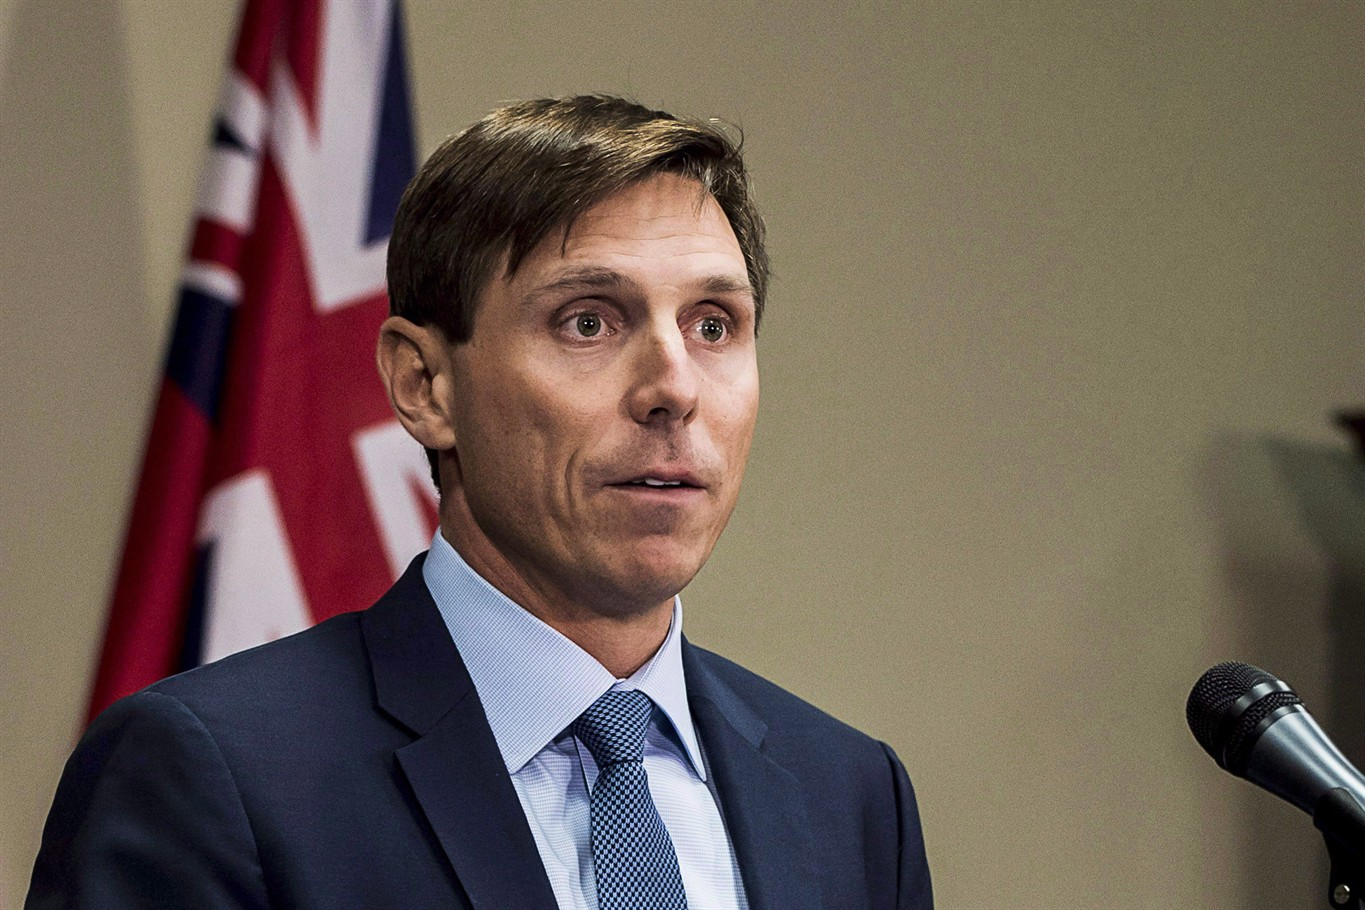 'The truth will come out,' Patrick Brown says